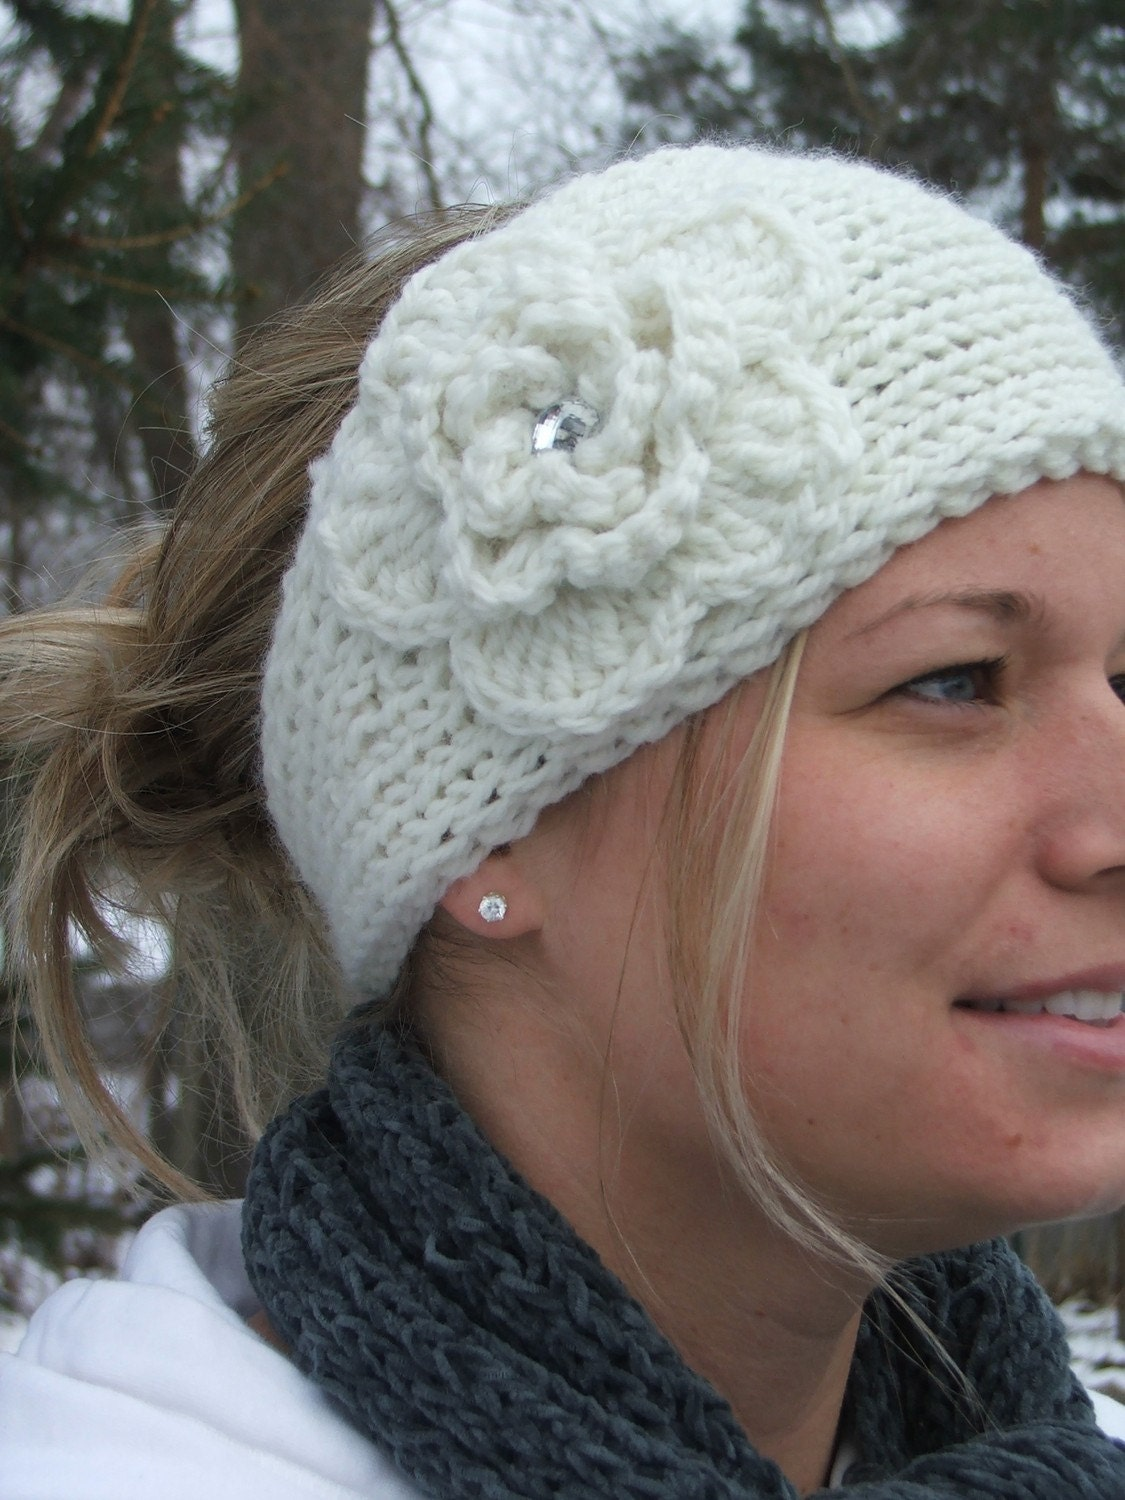 Knitting Patterns For Ear Warmers With Flower : Knit ear warmer headband in winter white w/ by ShopwithJoy ...